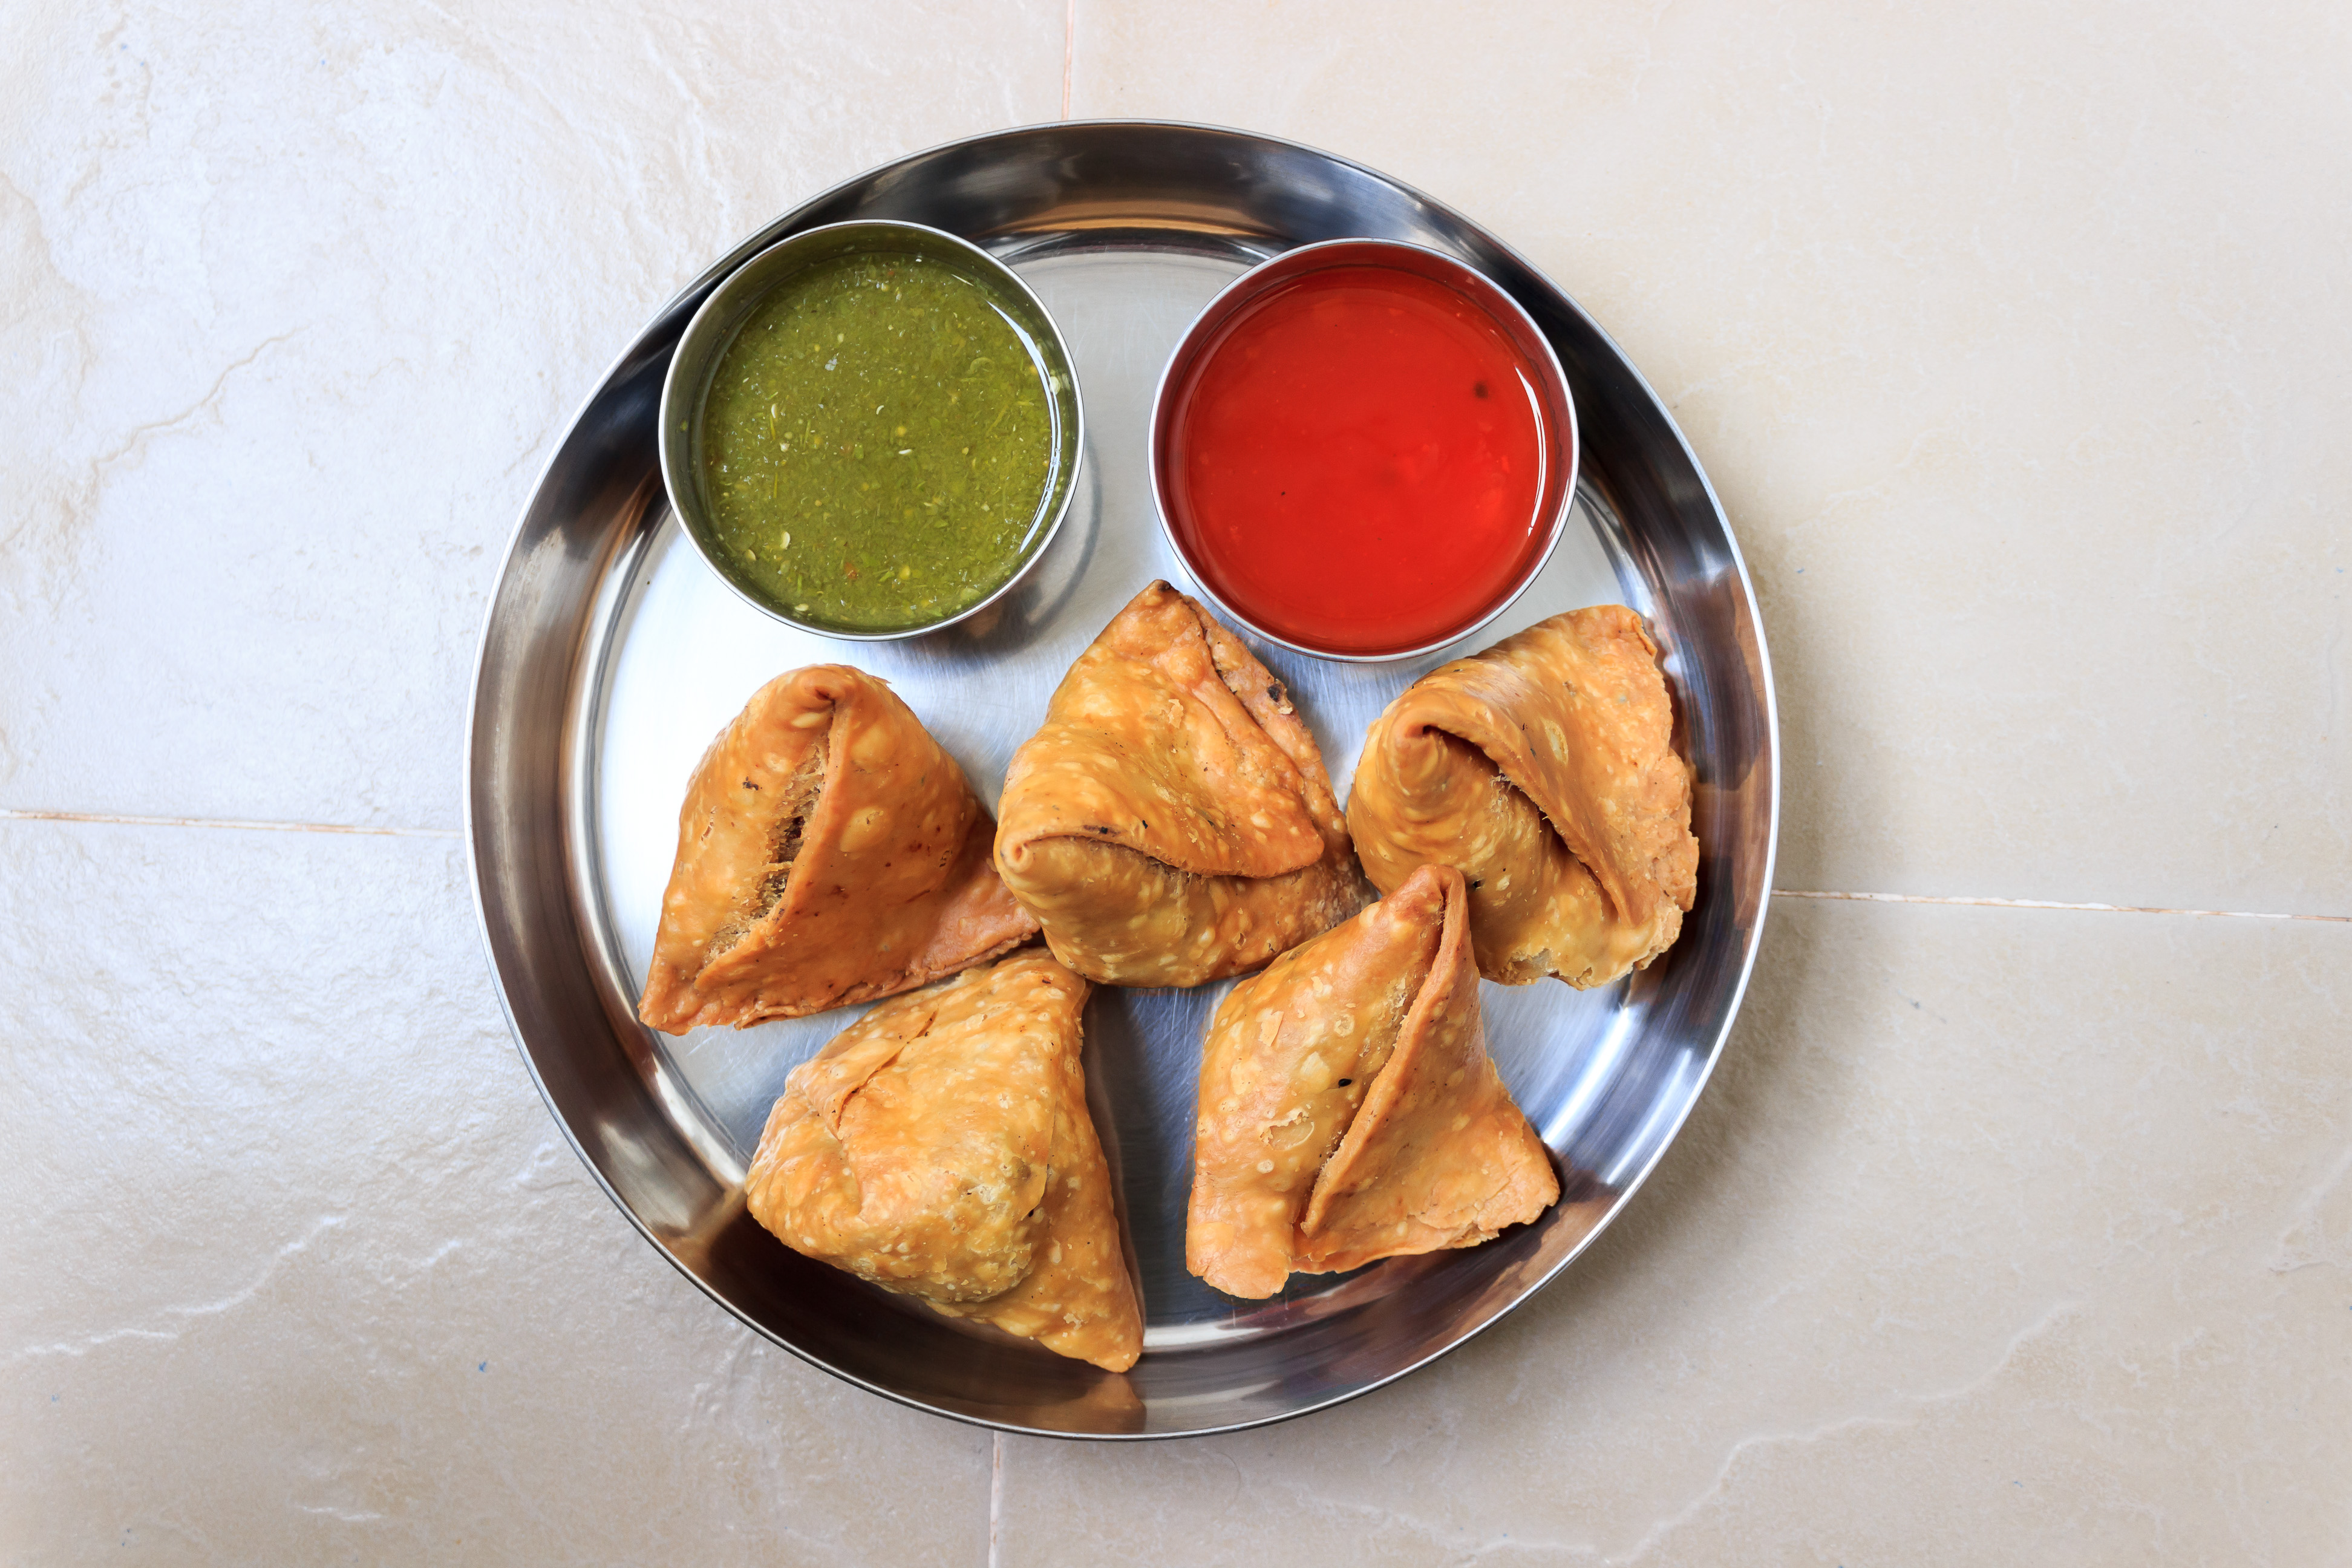 Indian Samosa - dish filled with potatoes popular among Indian restaurants in Hua Hin